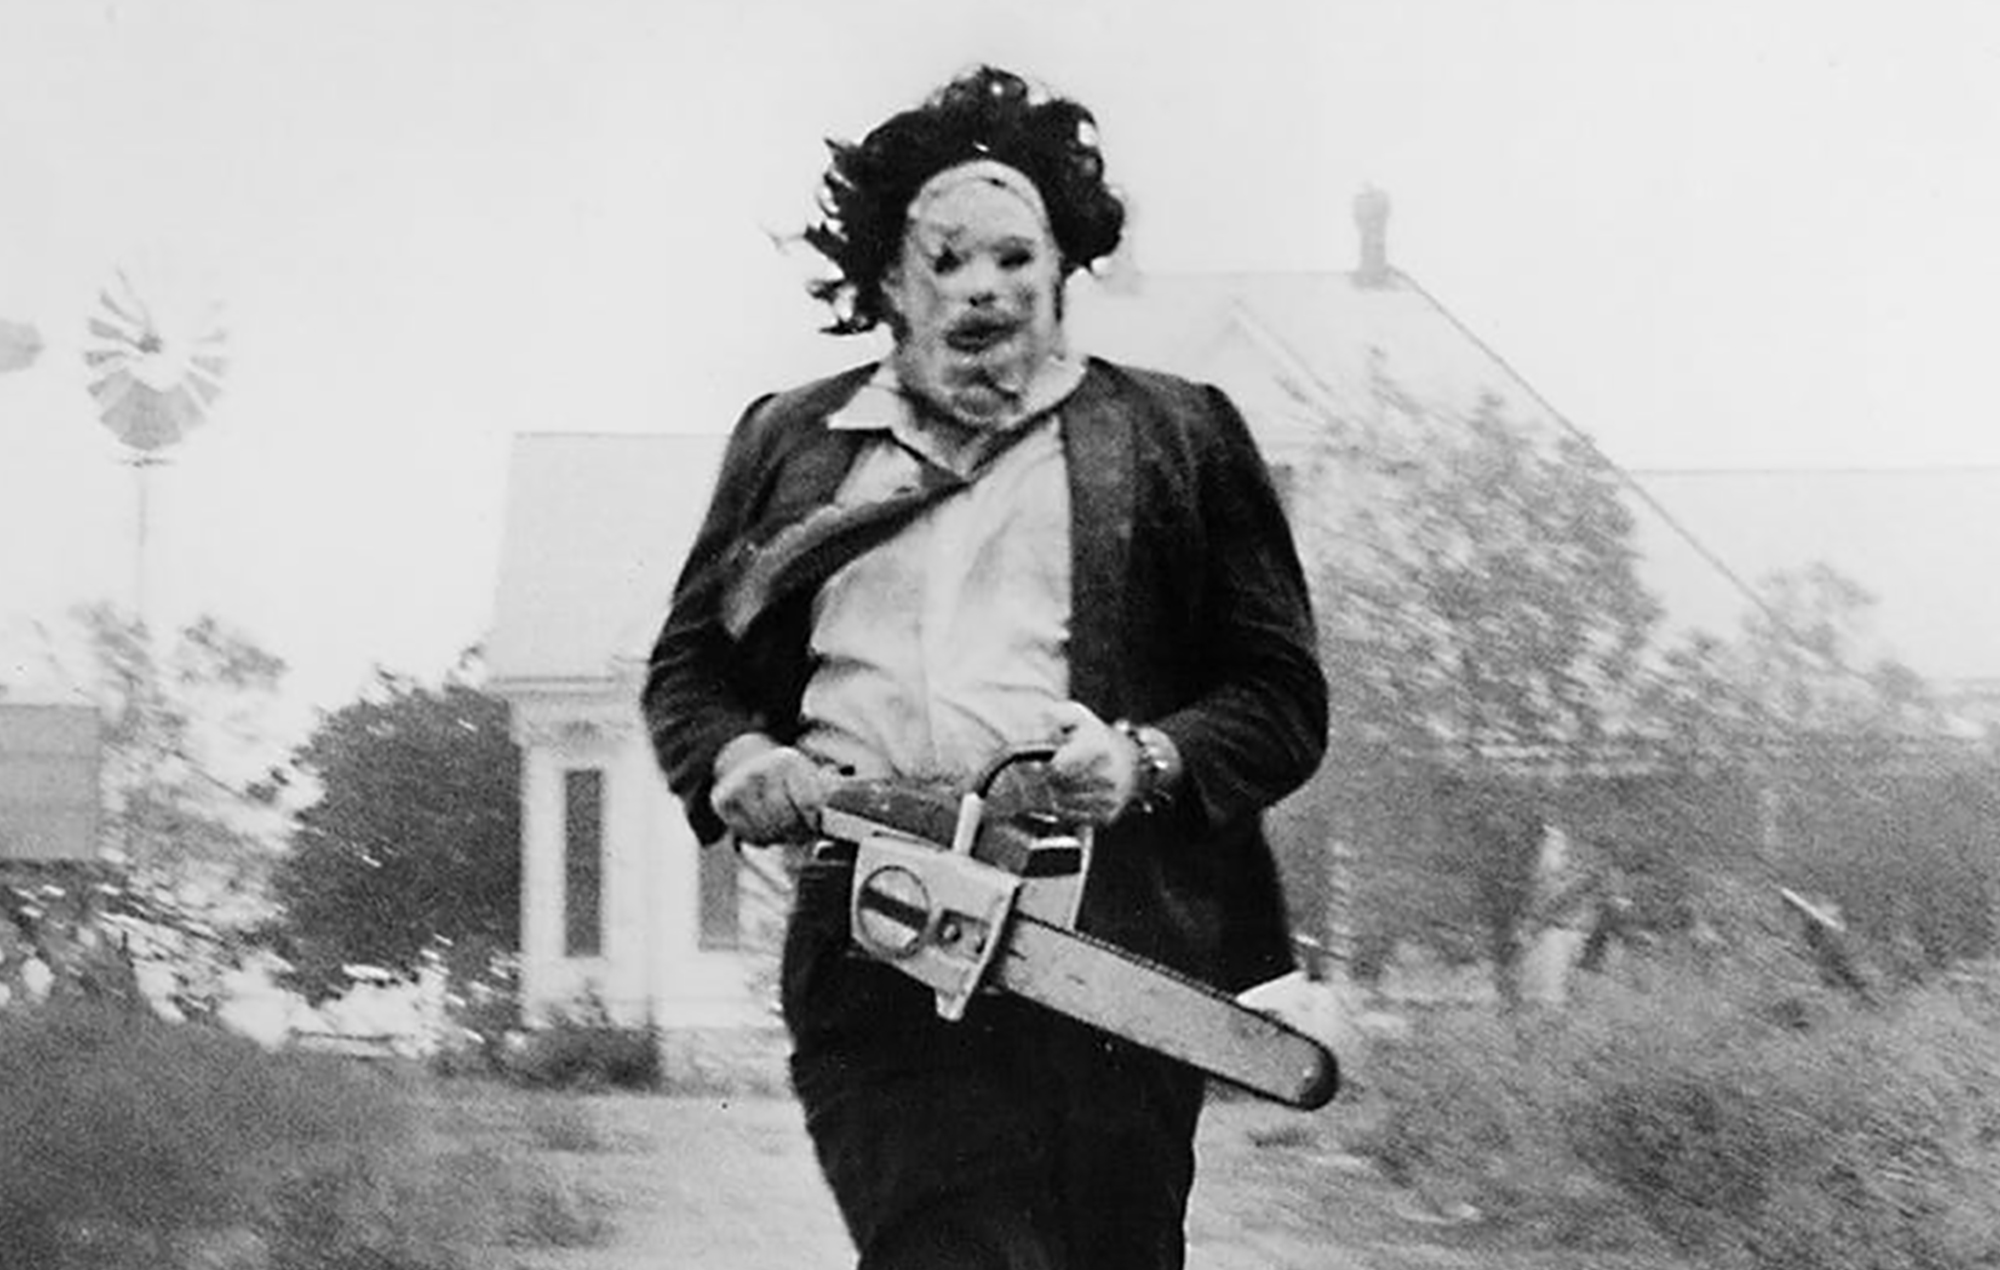 The Texas Chainsaw Massacre movies based on real-life stories